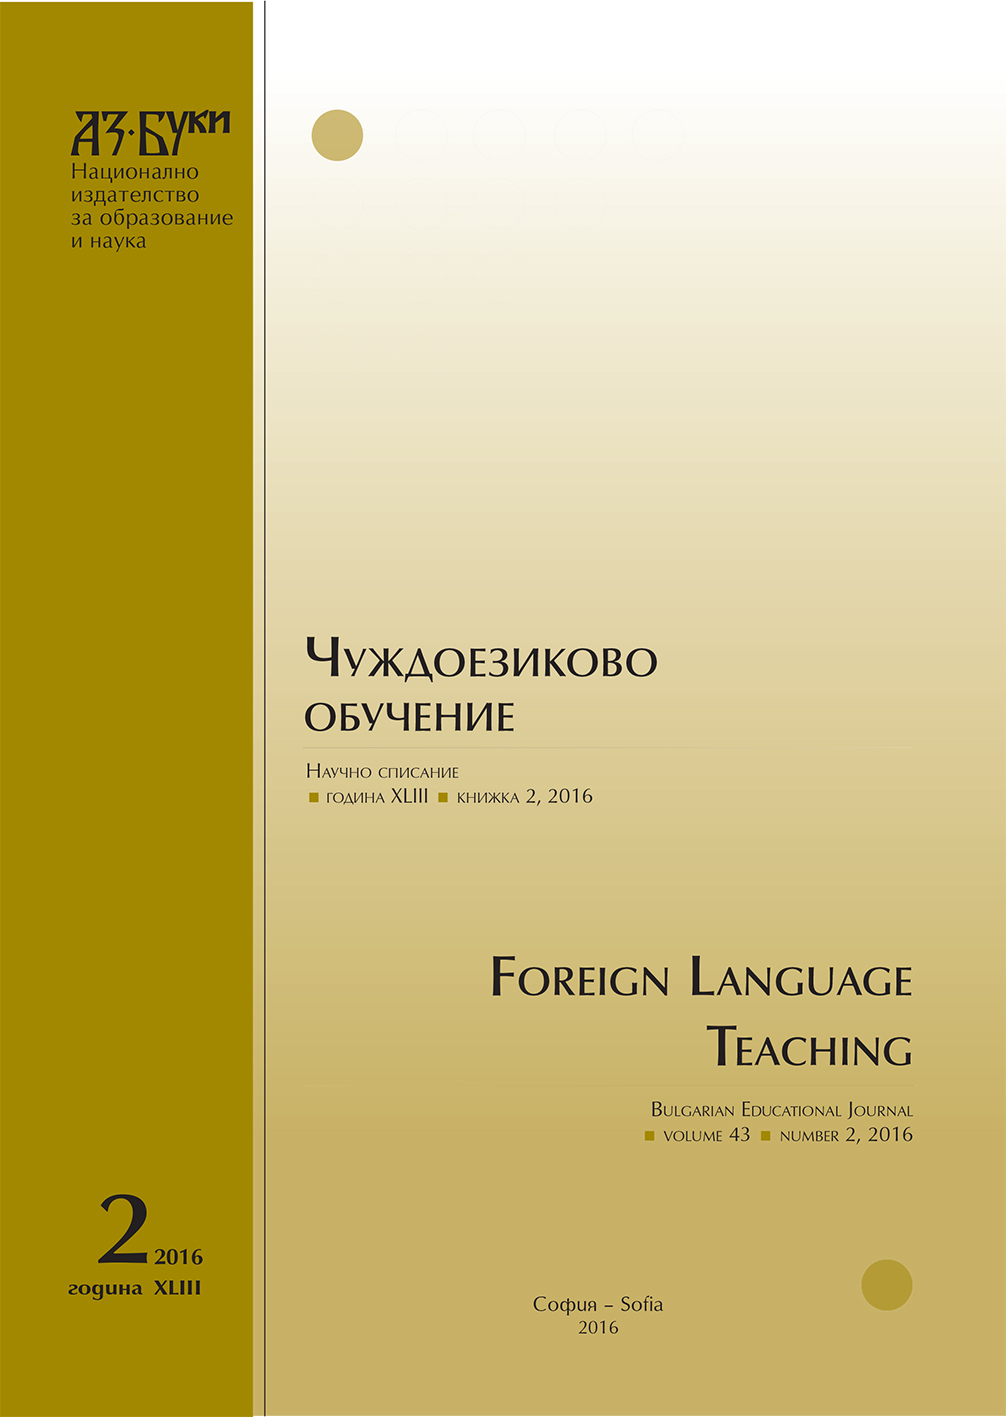 Comparative Analysis of the Textual Competence of Bulgarian Students in English as a Foreign Language, and in Bulgarian